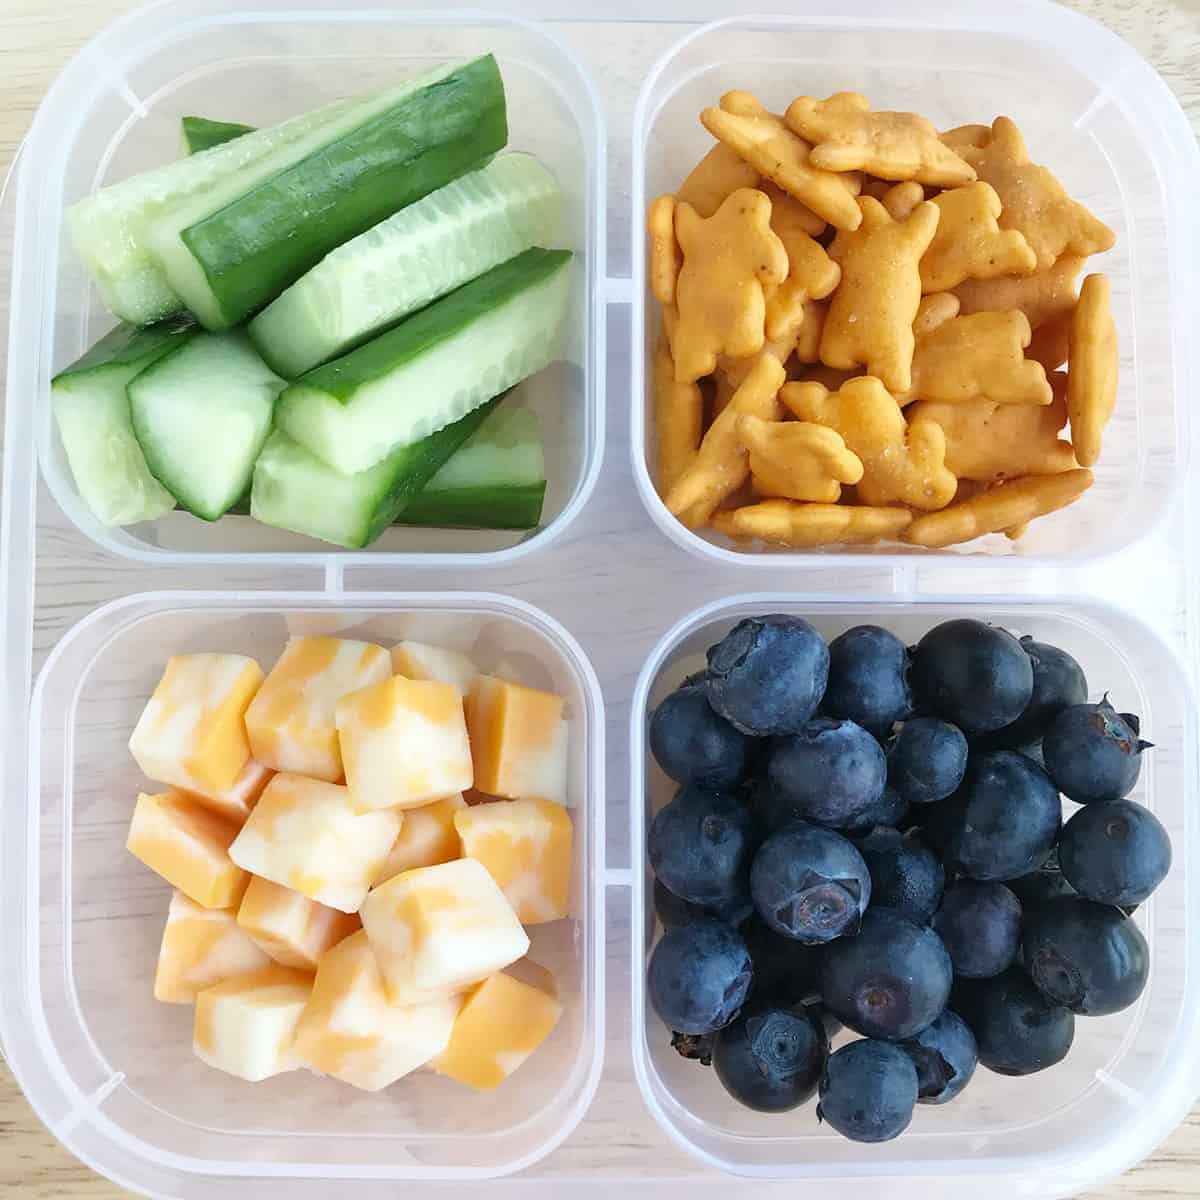 snack-lunch-in-clear-container